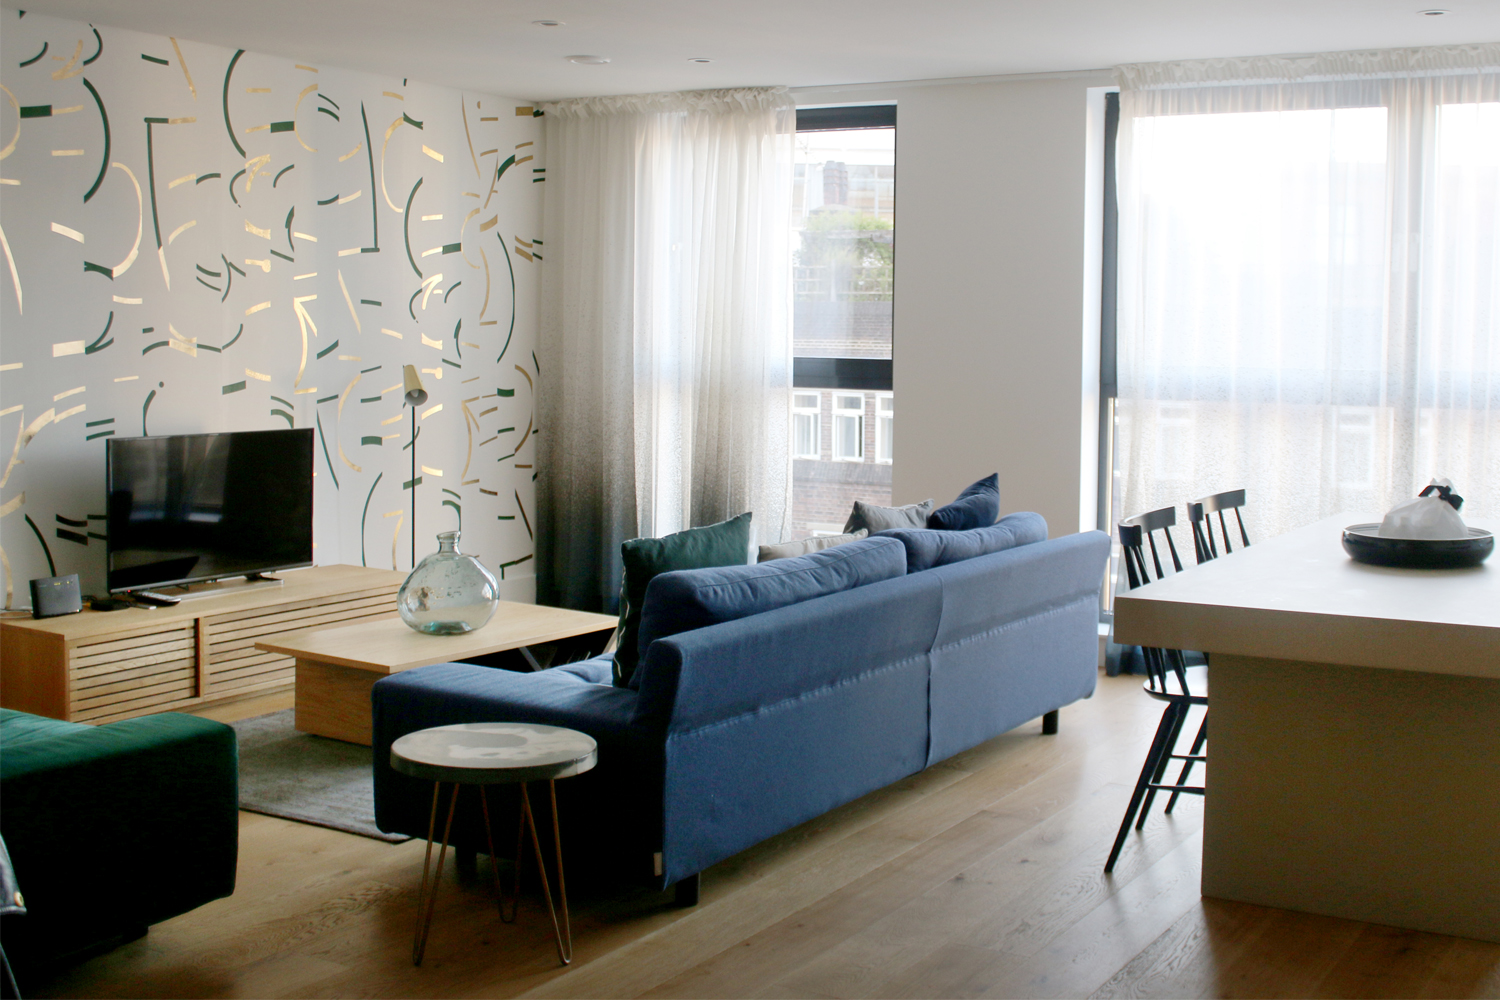 Cuckooz Apartment Aldgate East Feature Image